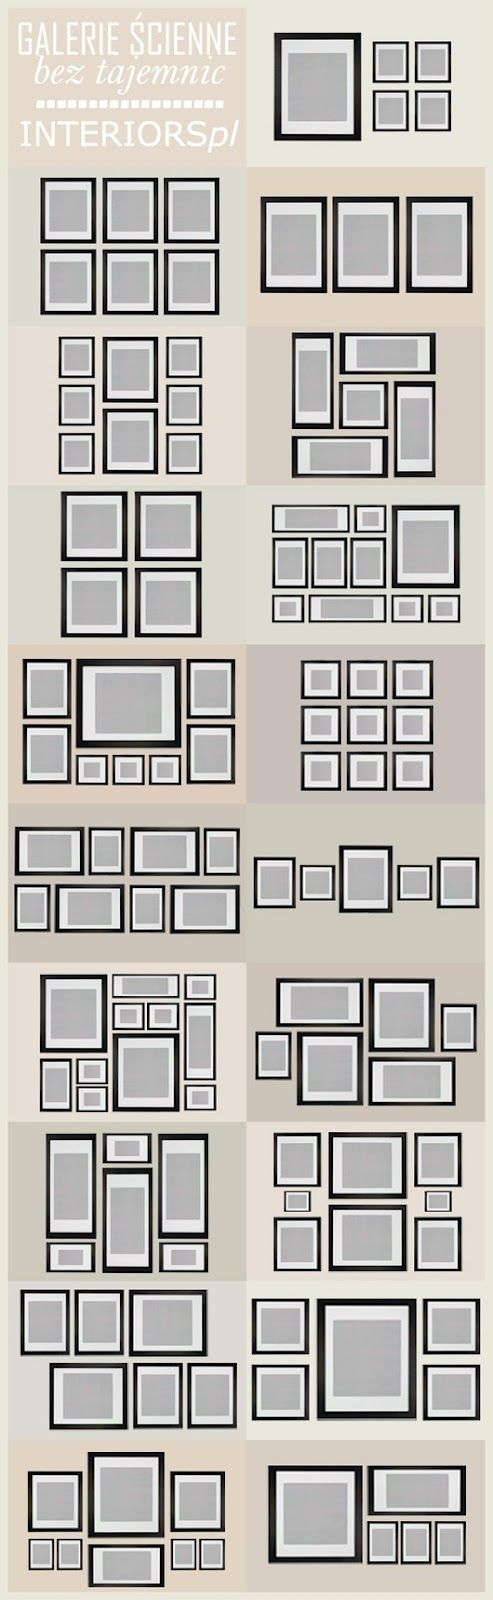 35 best what to do with mismatched frames images on pinterest wall collage ideas exactly what ive been looking for different layouts for the picture collage we are doing in our family room jeuxipadfo Image collections